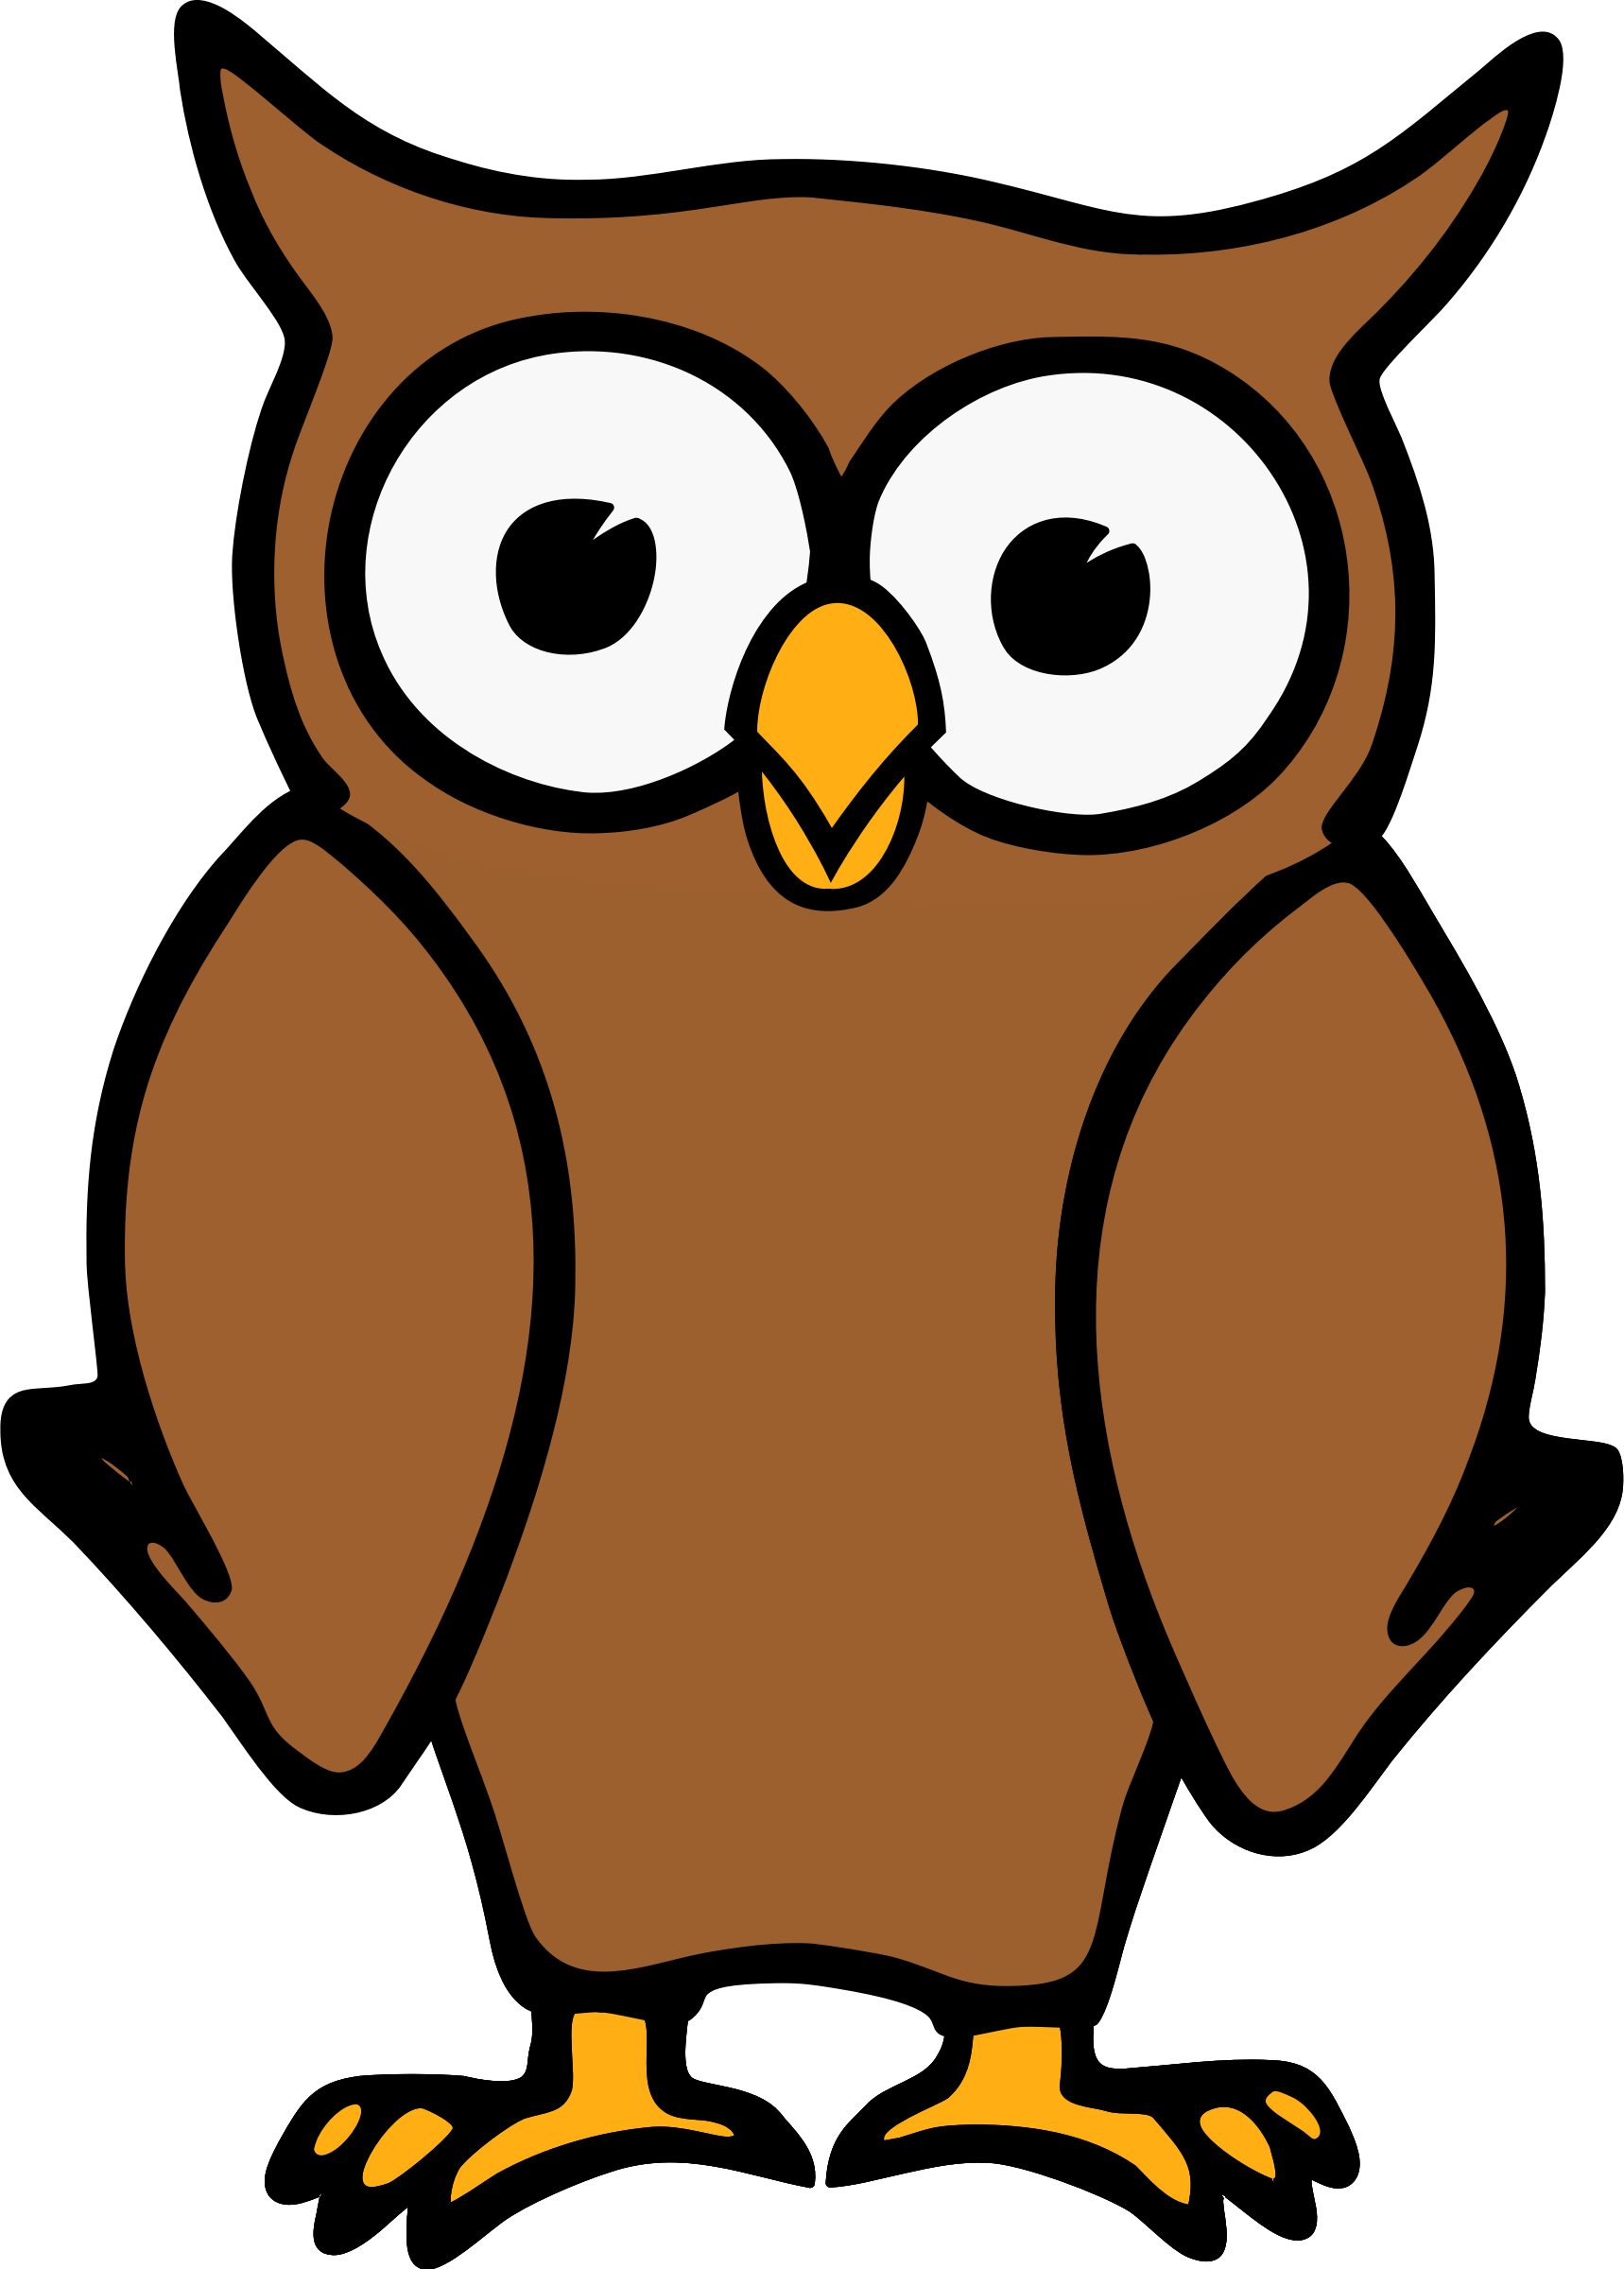 Owl etourist brown.